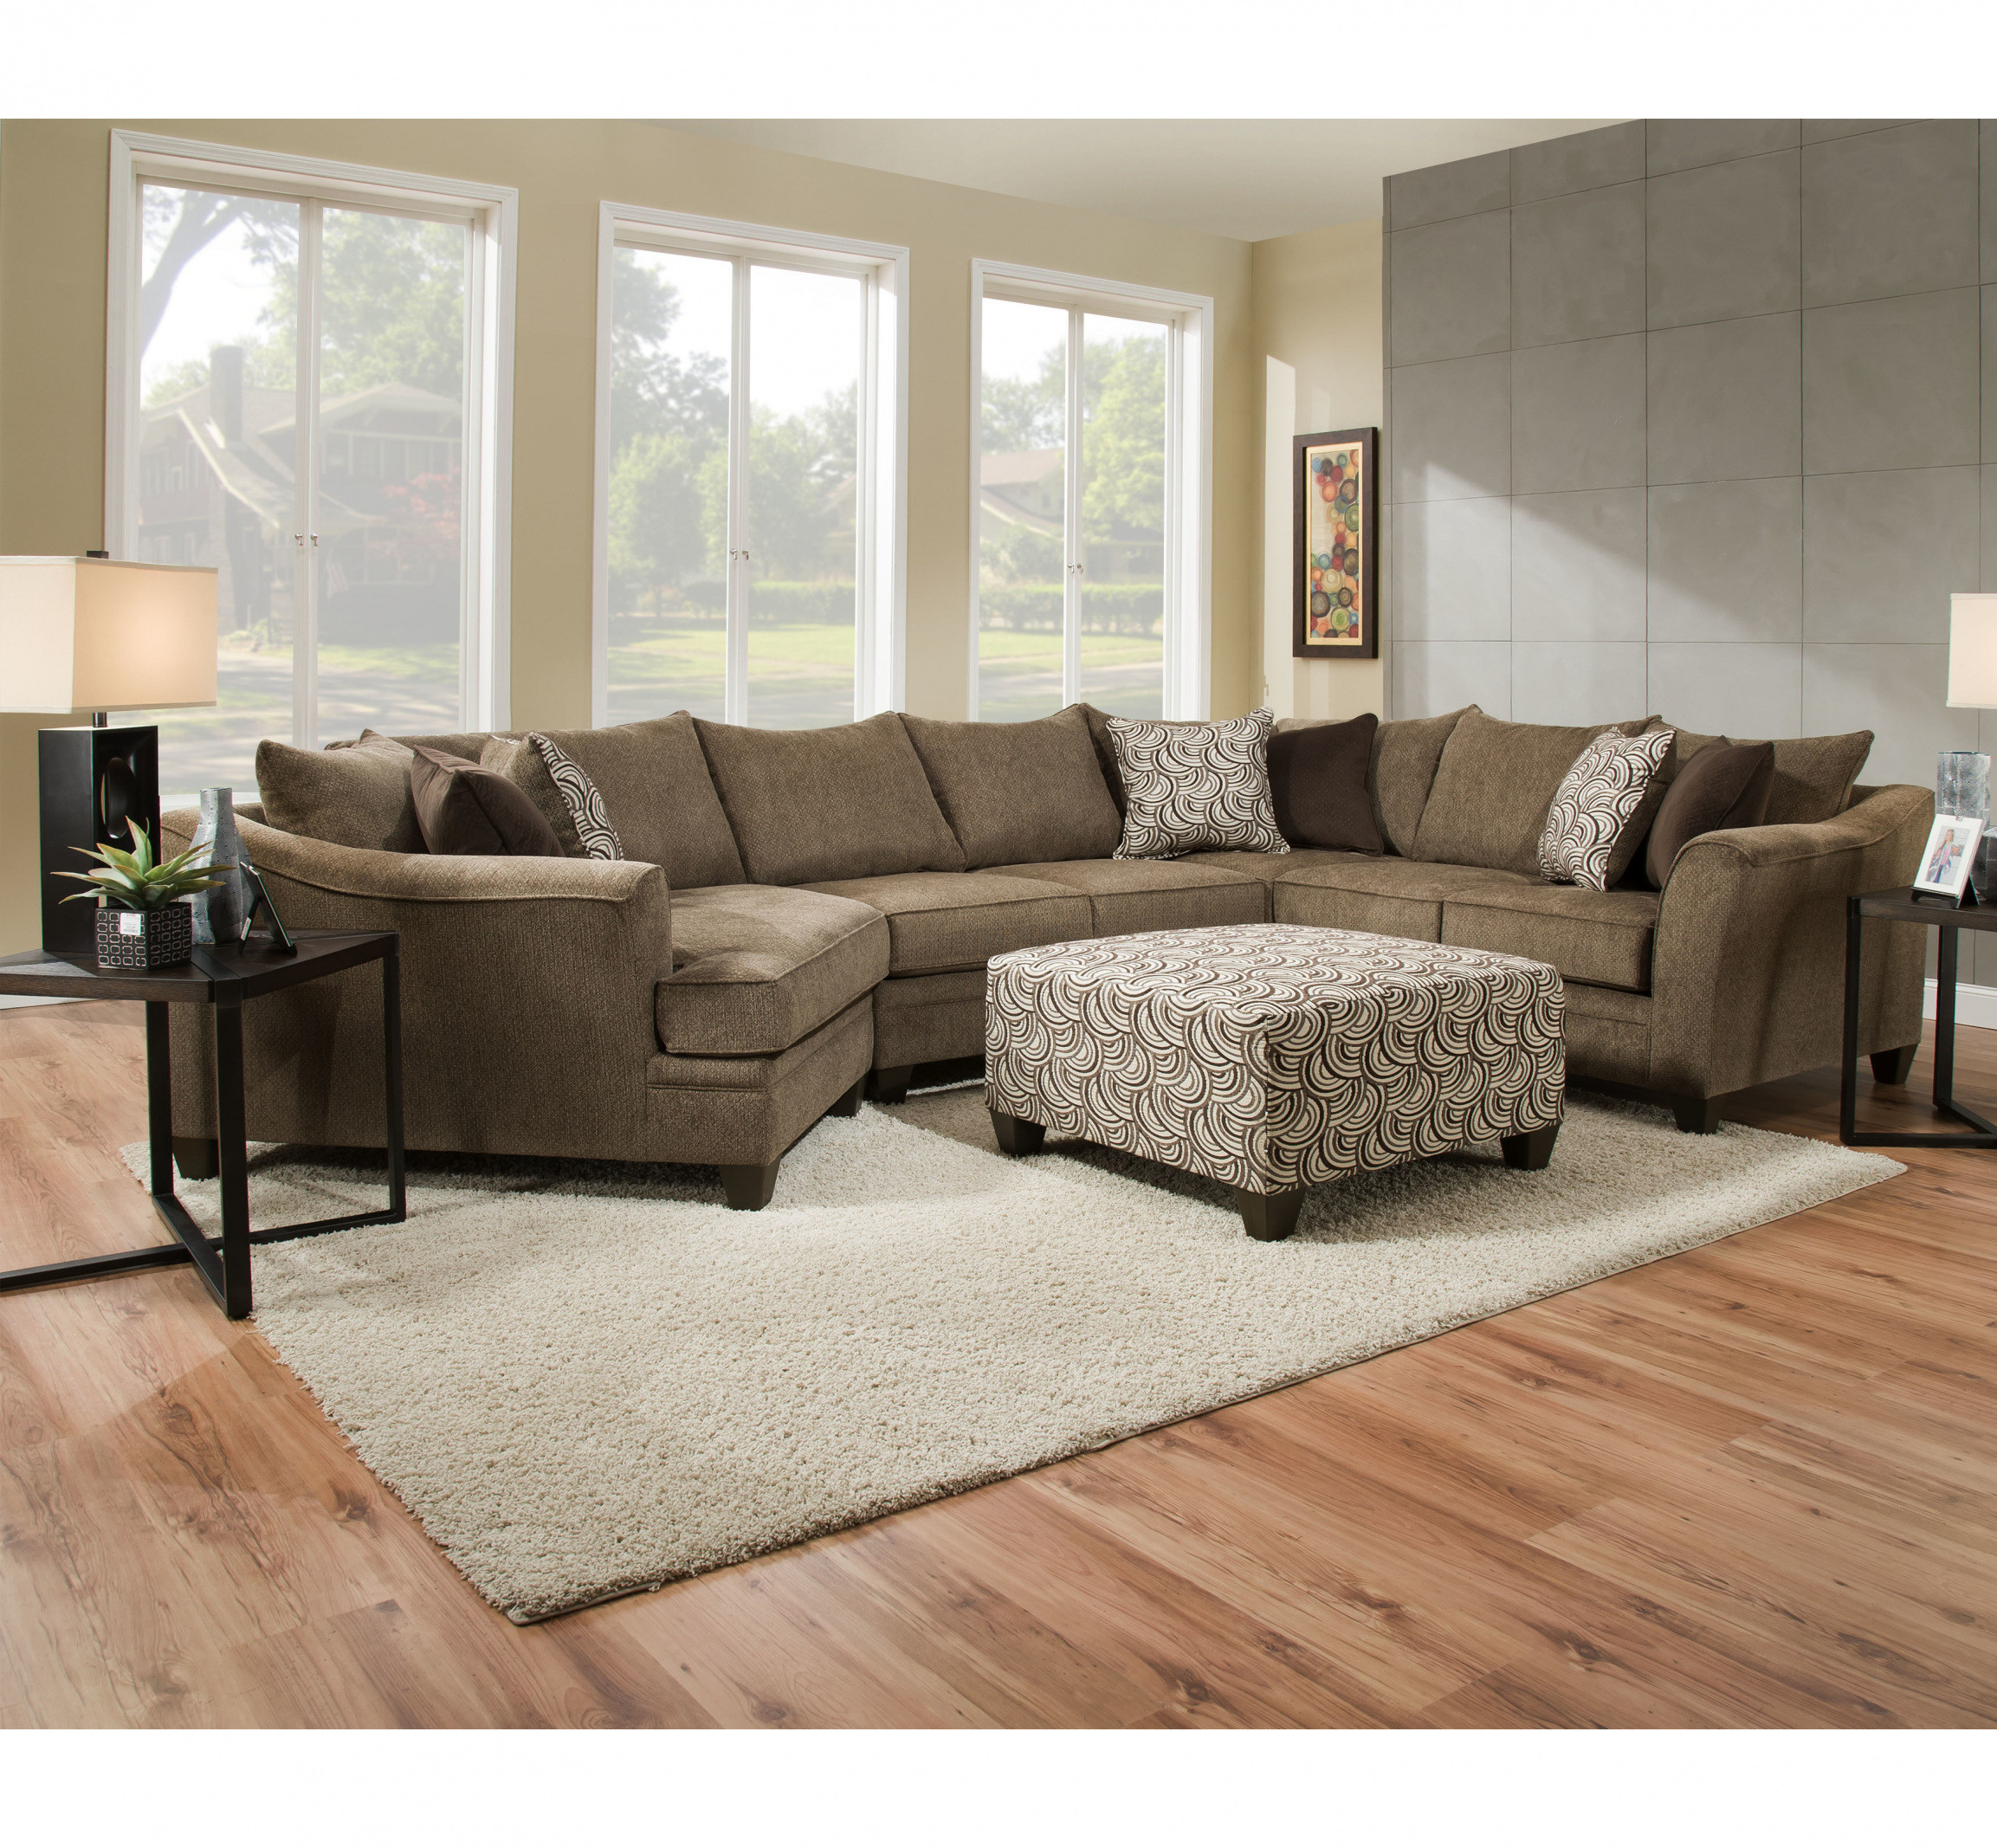 Cheap Hardwood Flooring Gta Of Sectional sofa Reviews Cheap and Reviews Crate and Barrel sofa with for Home Design